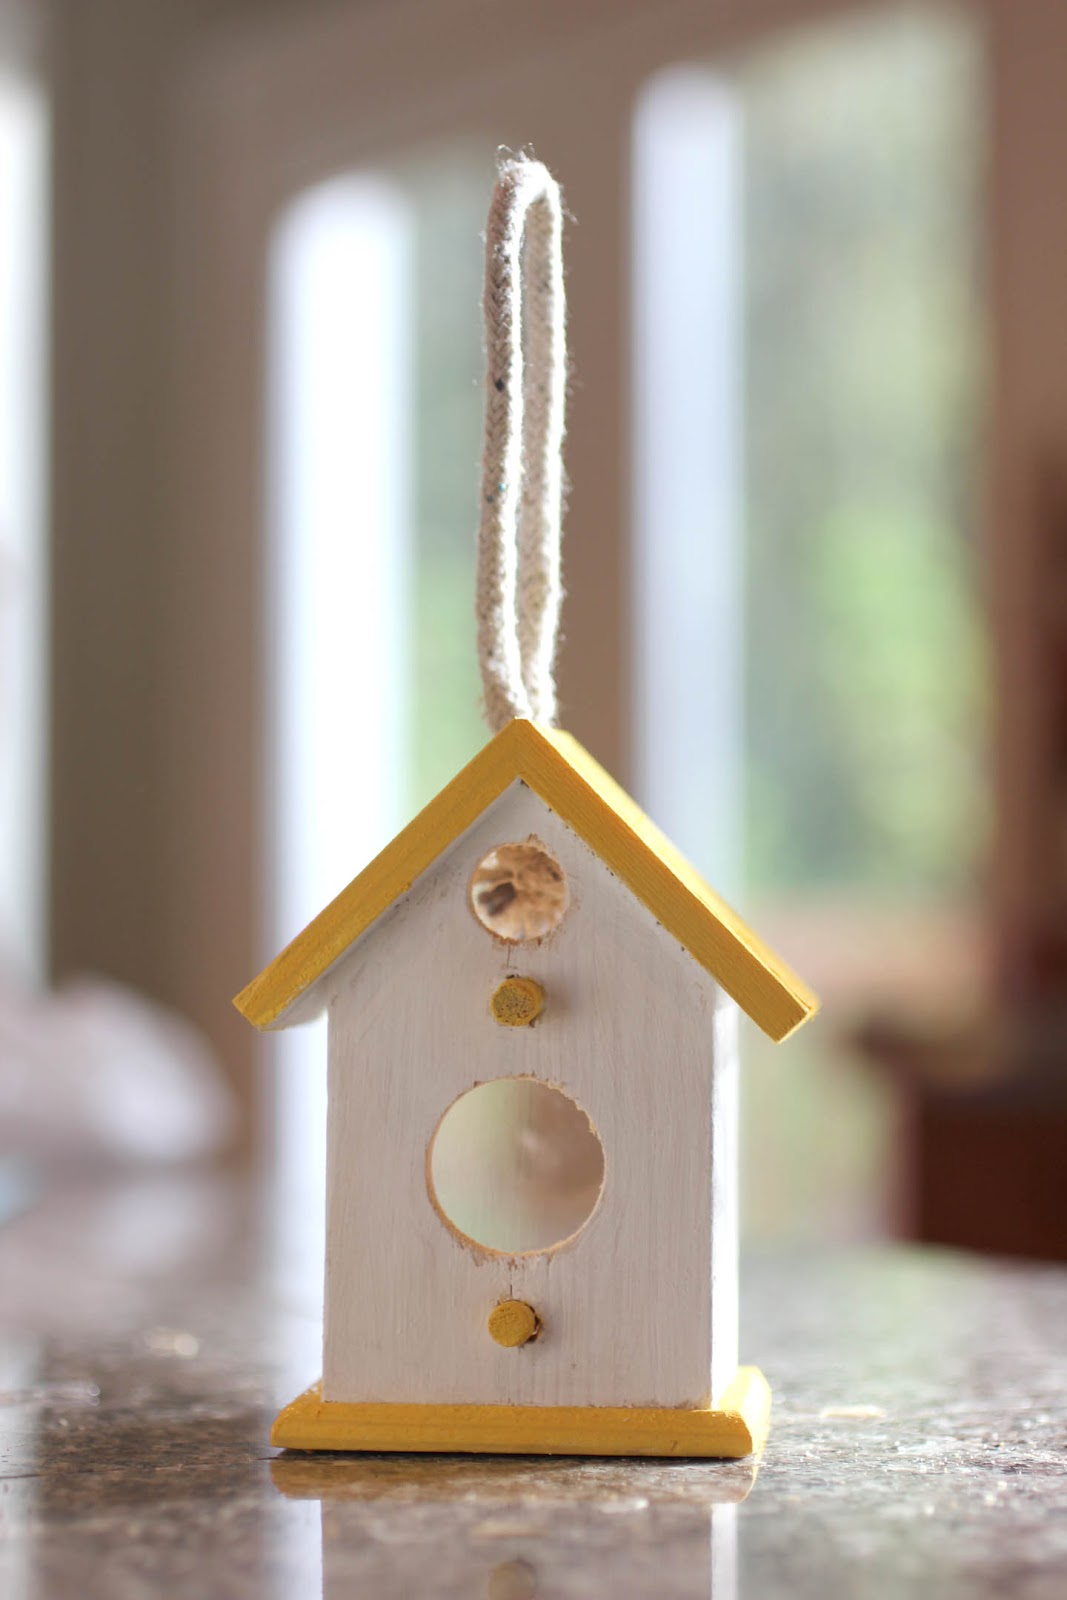 Window bird house - We Have 3 Lovely Big Windows That Our Couch Sits In Front Of This Was Obviously The Perfect Spot So We Could Keep An